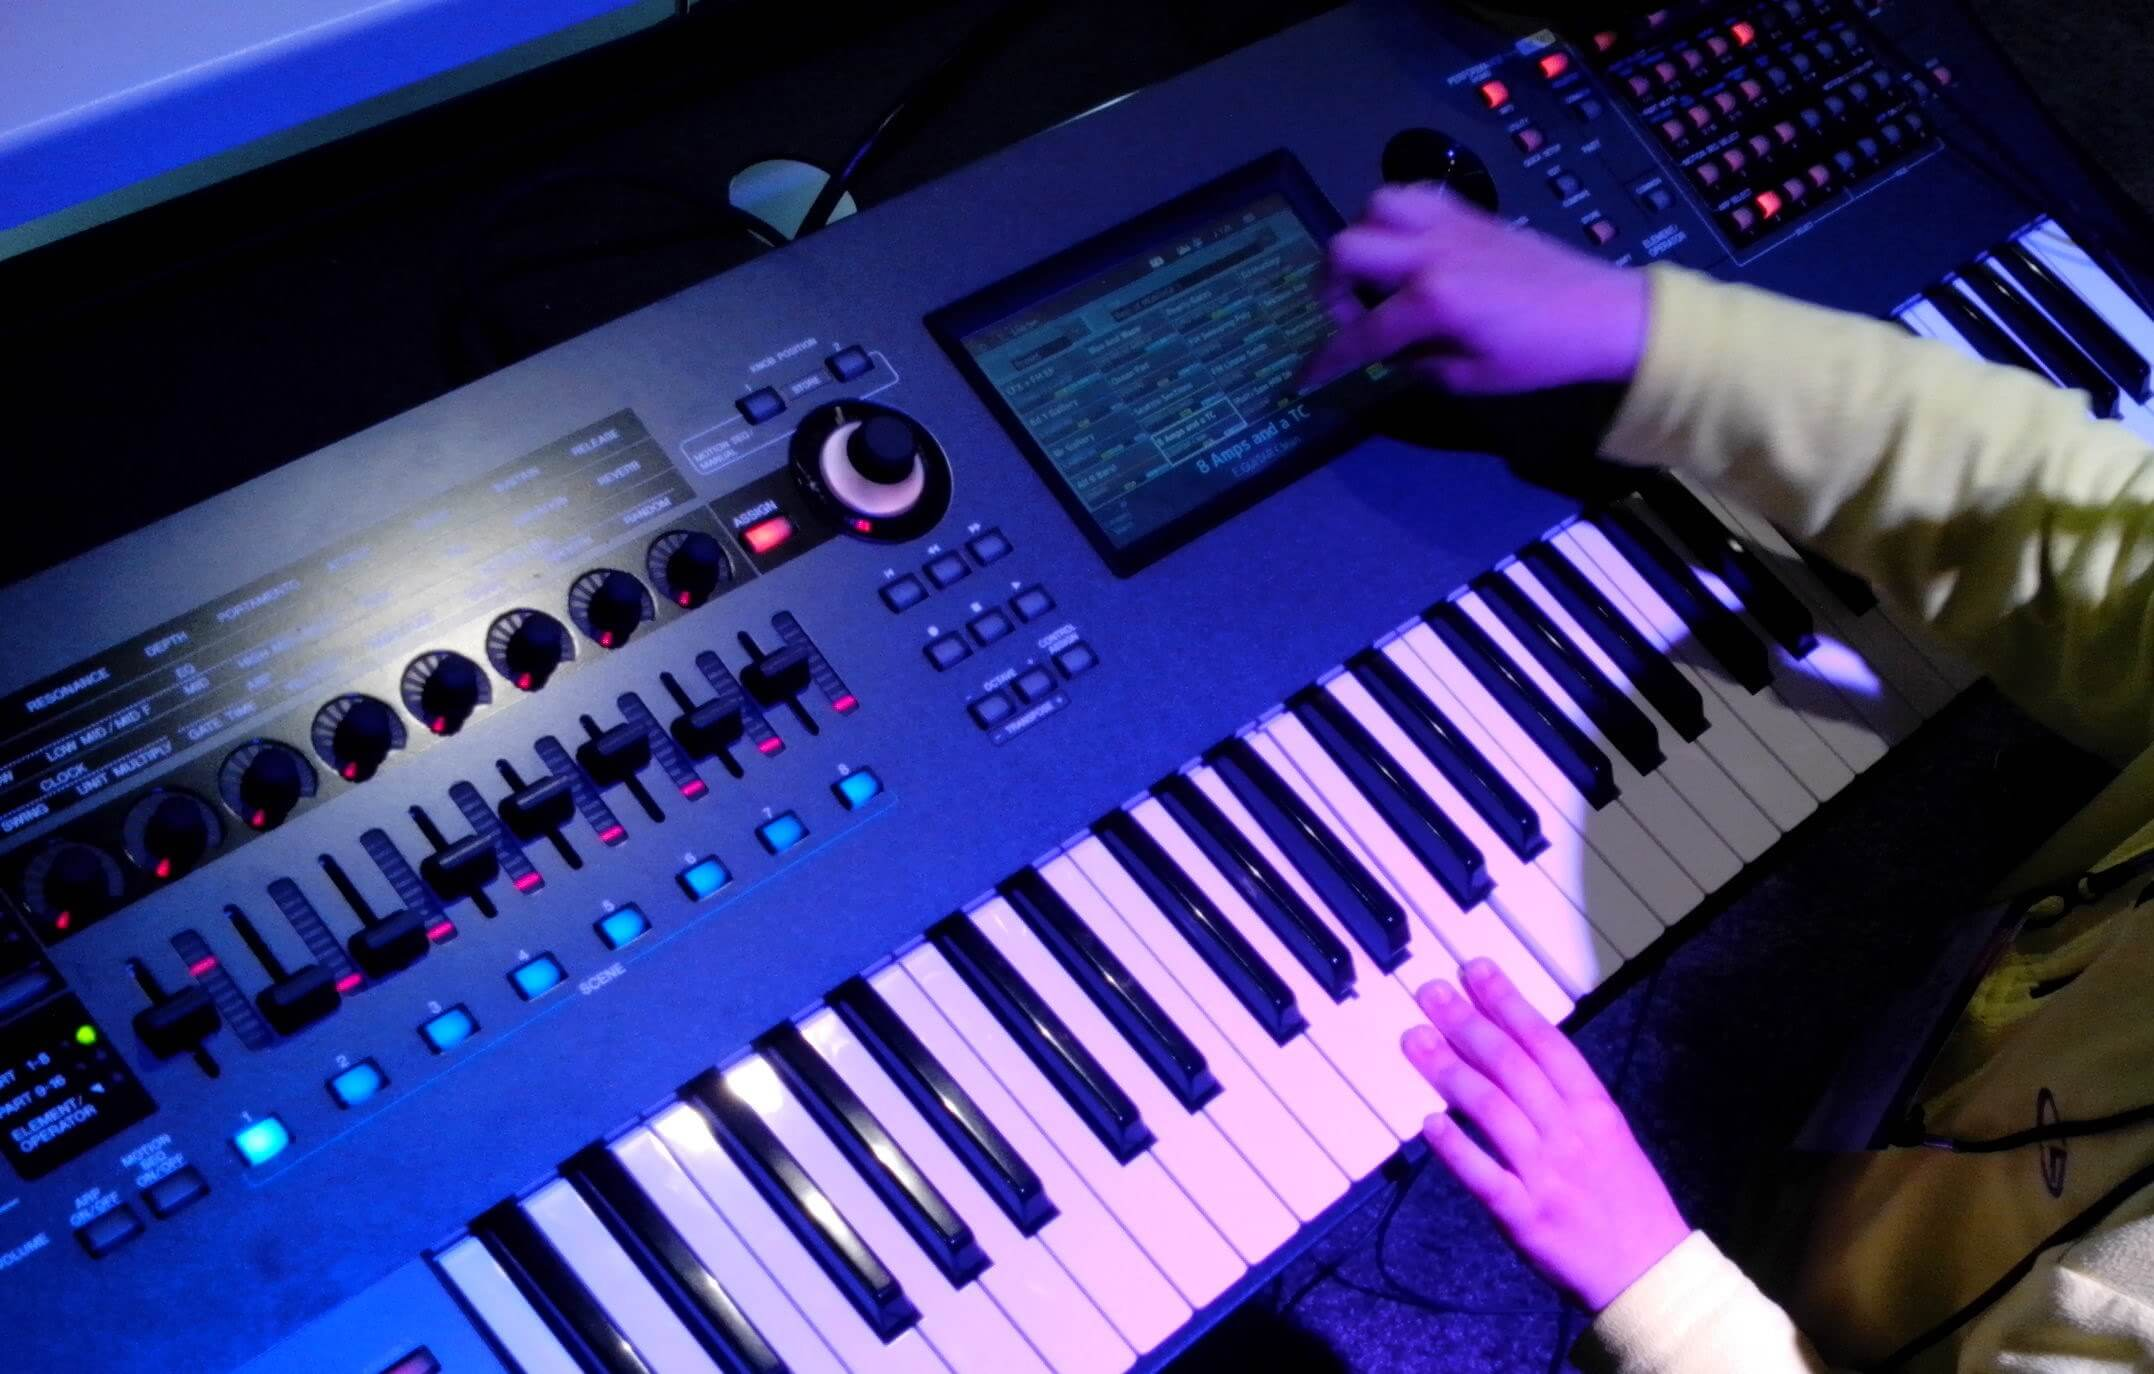 MMA and AMEI announce MIDI 2.0 prototyping has begun